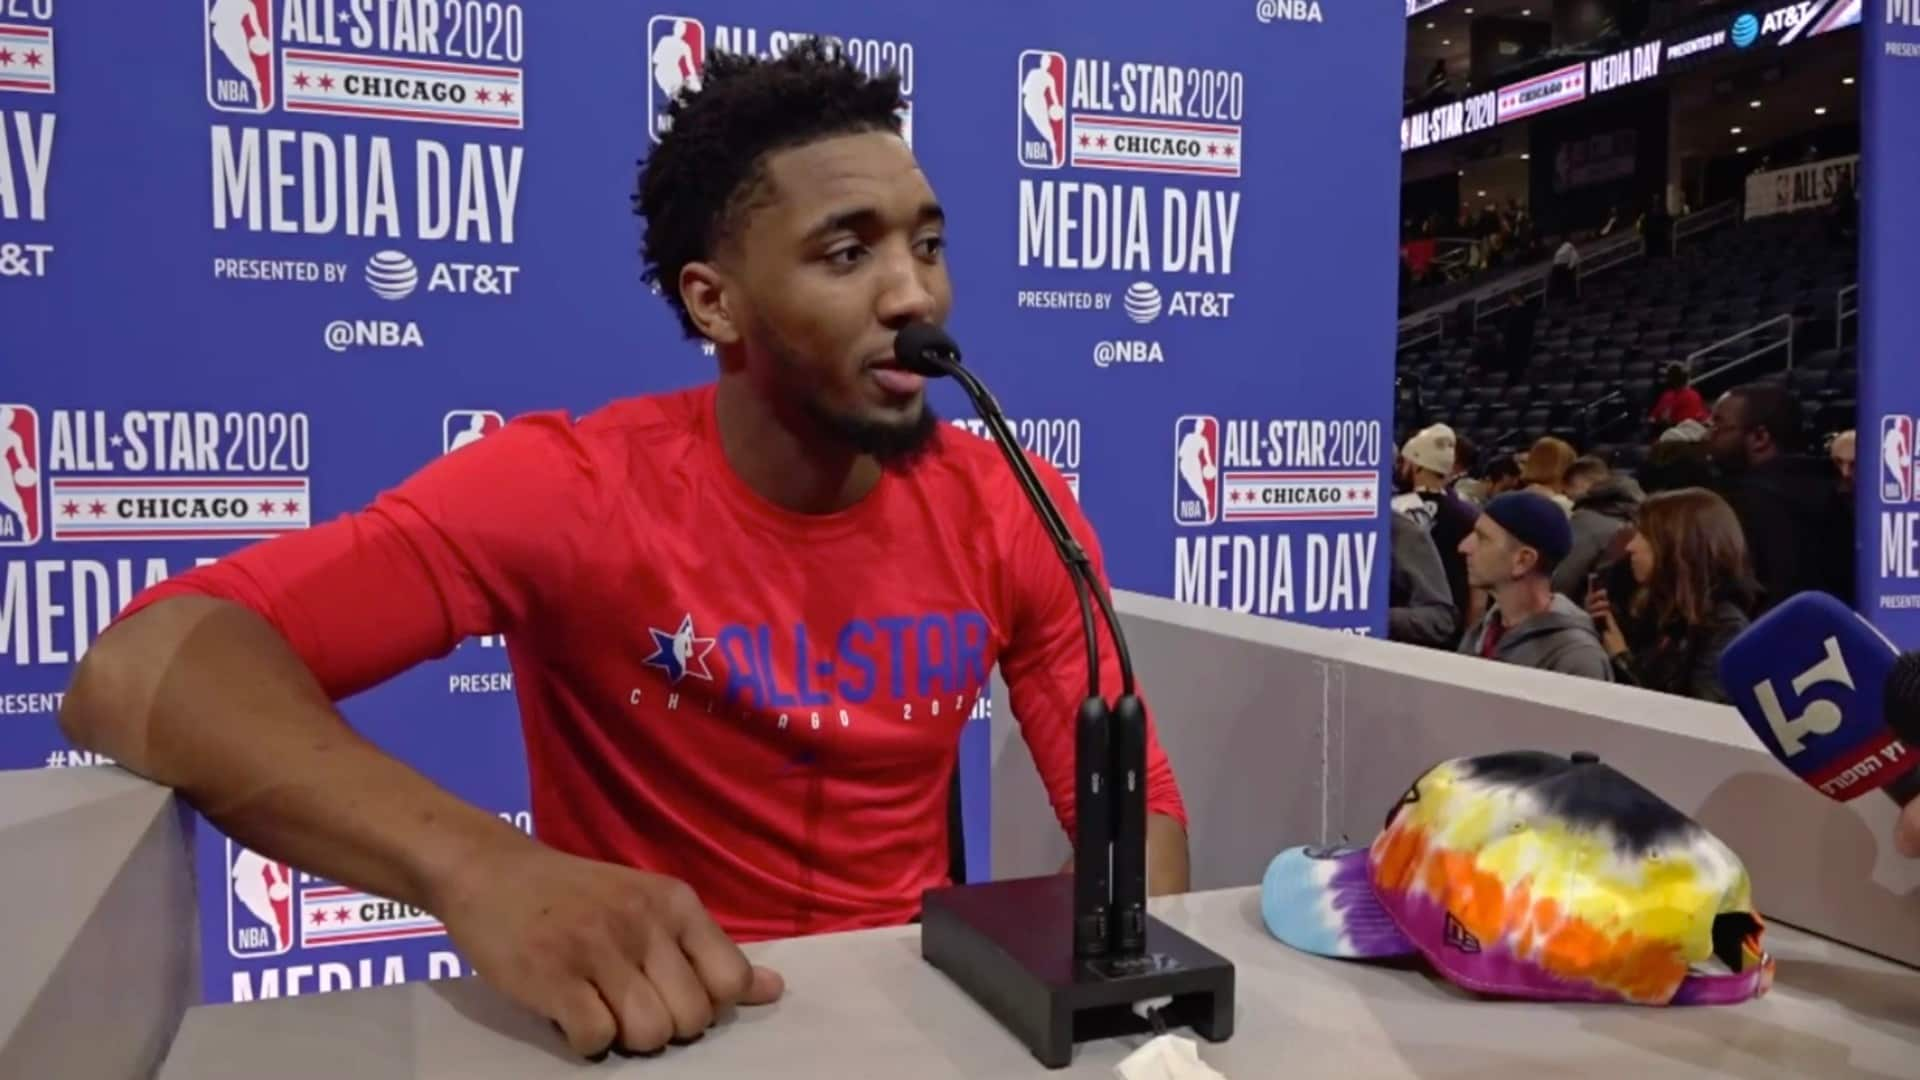 All-Star Press Conference, 2.15 - Donovan Mitchell